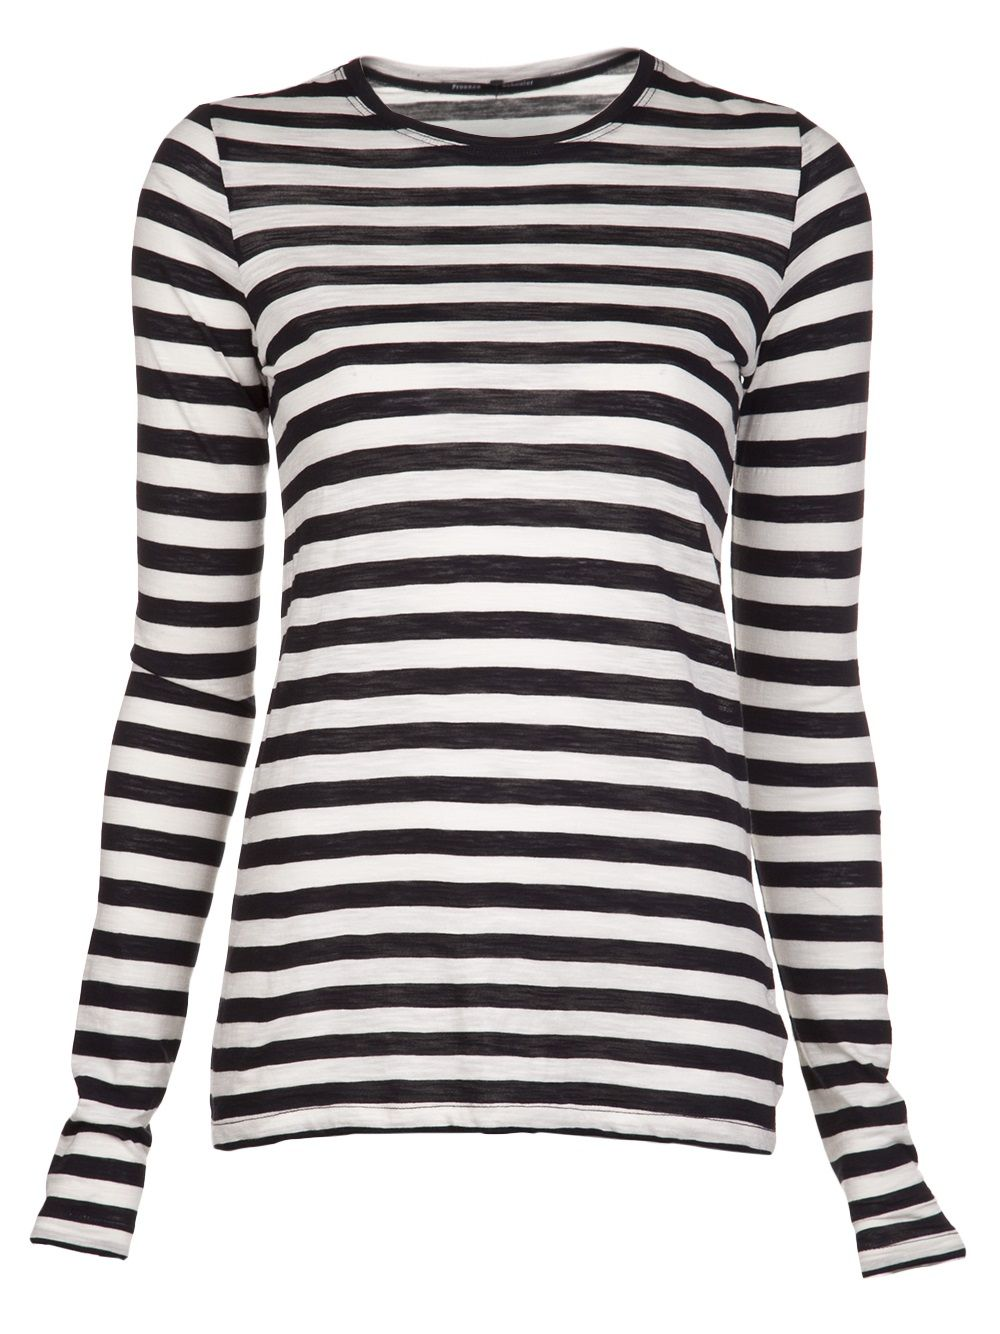 588-Proenza-Schouler-women-s-striped-t-shirt-1.jpg (1000×1334 ...